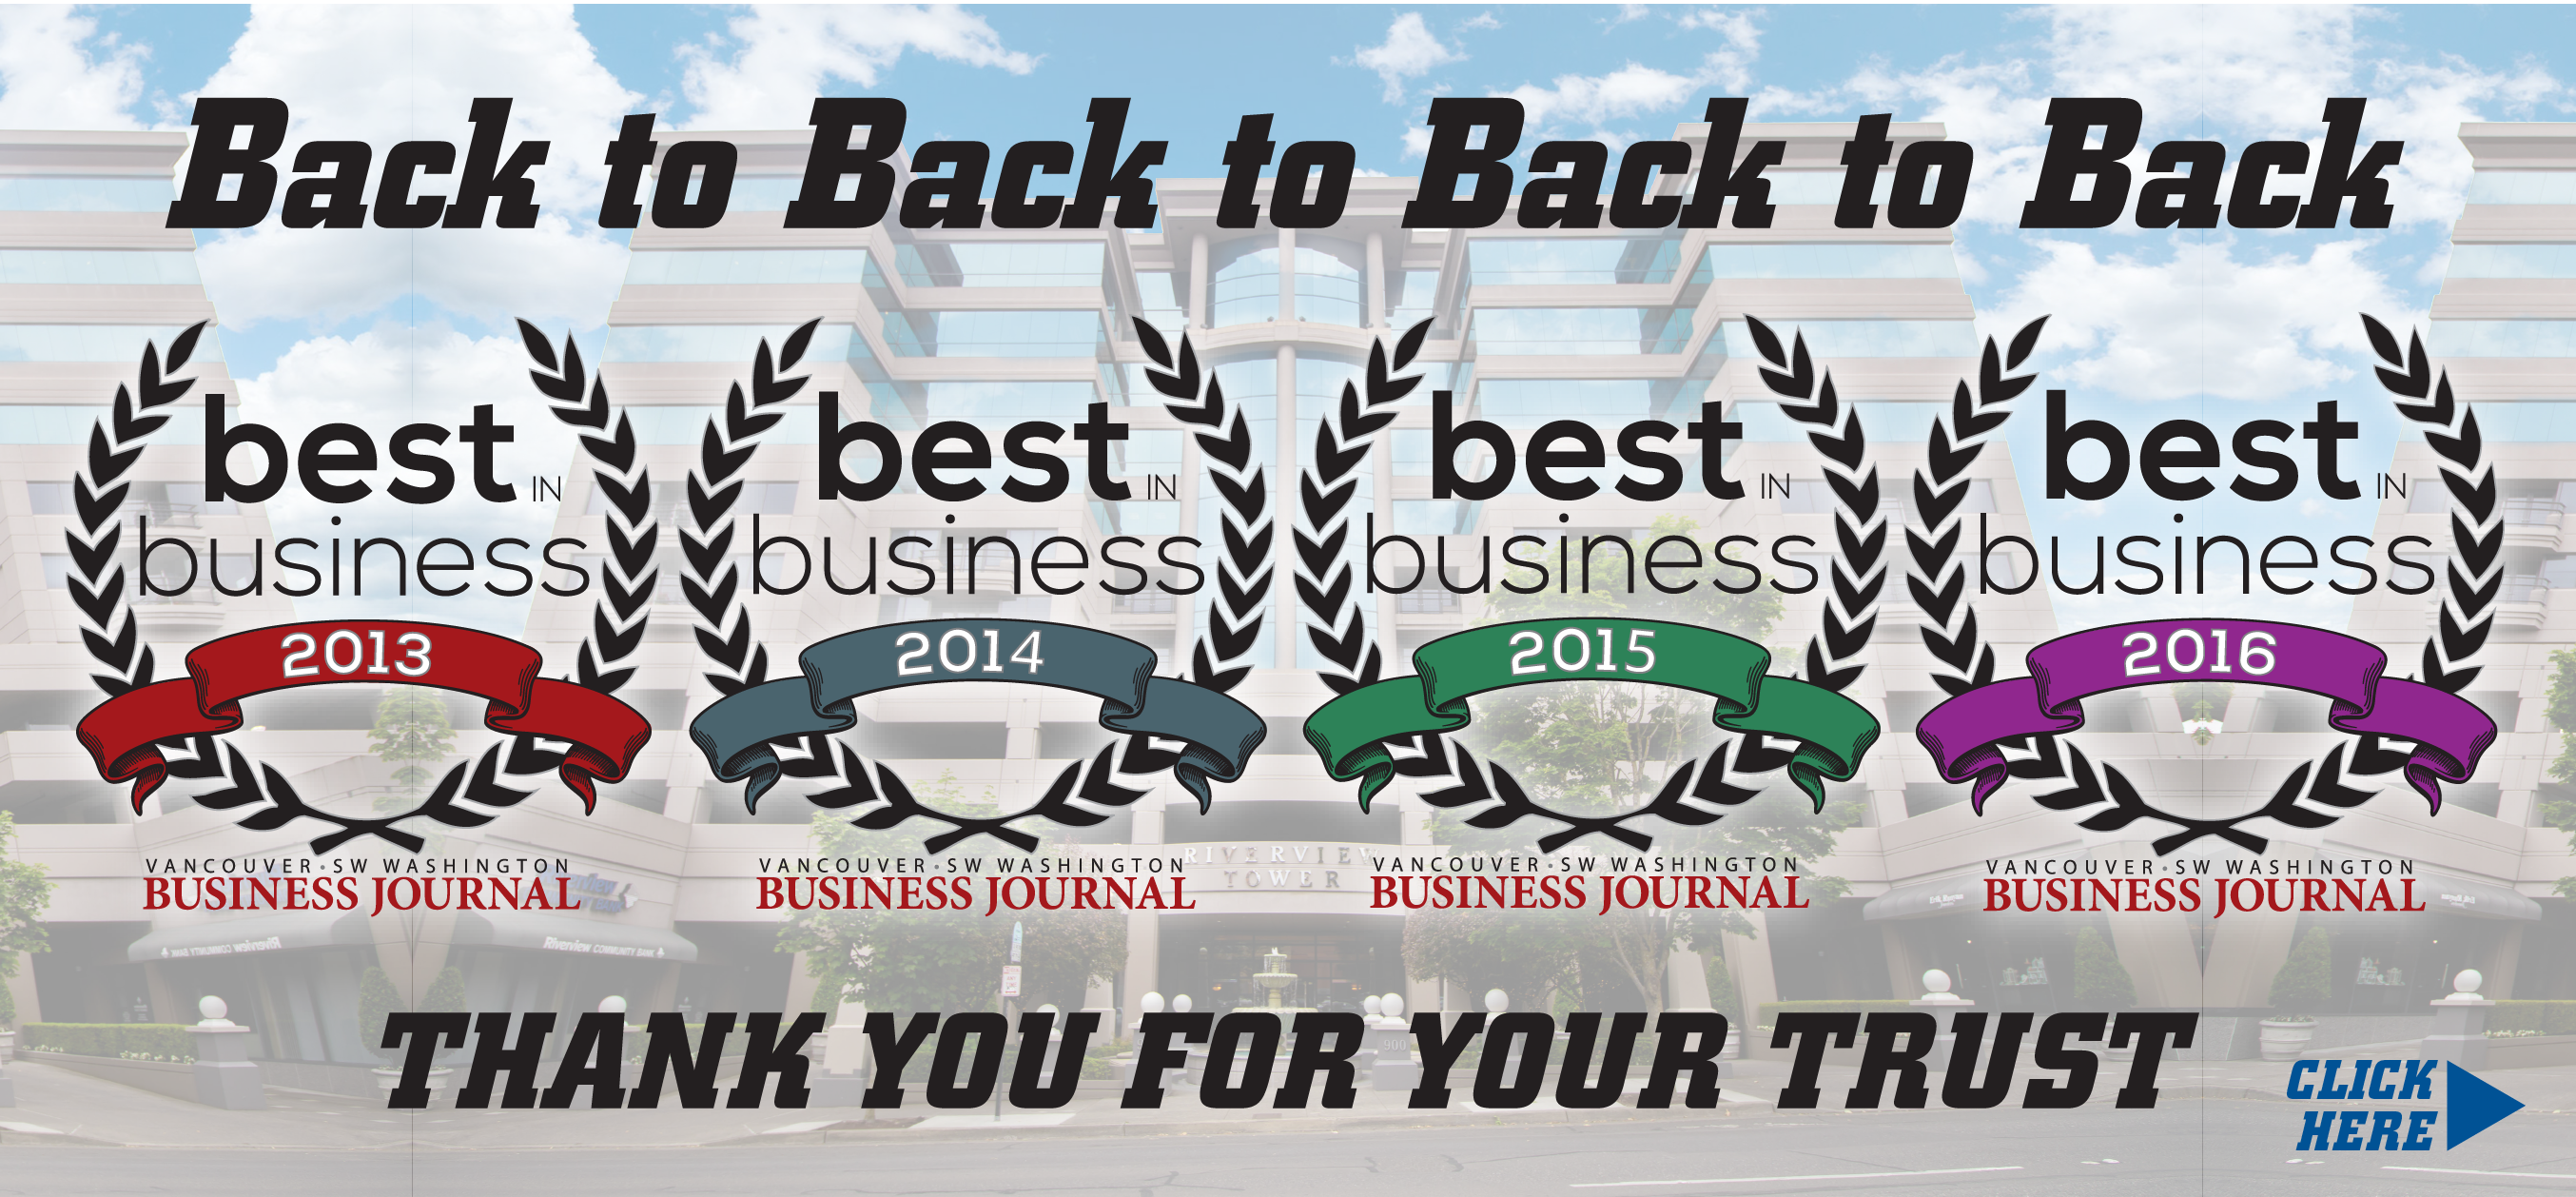 Vancouver Business Journal Best in Business Awards